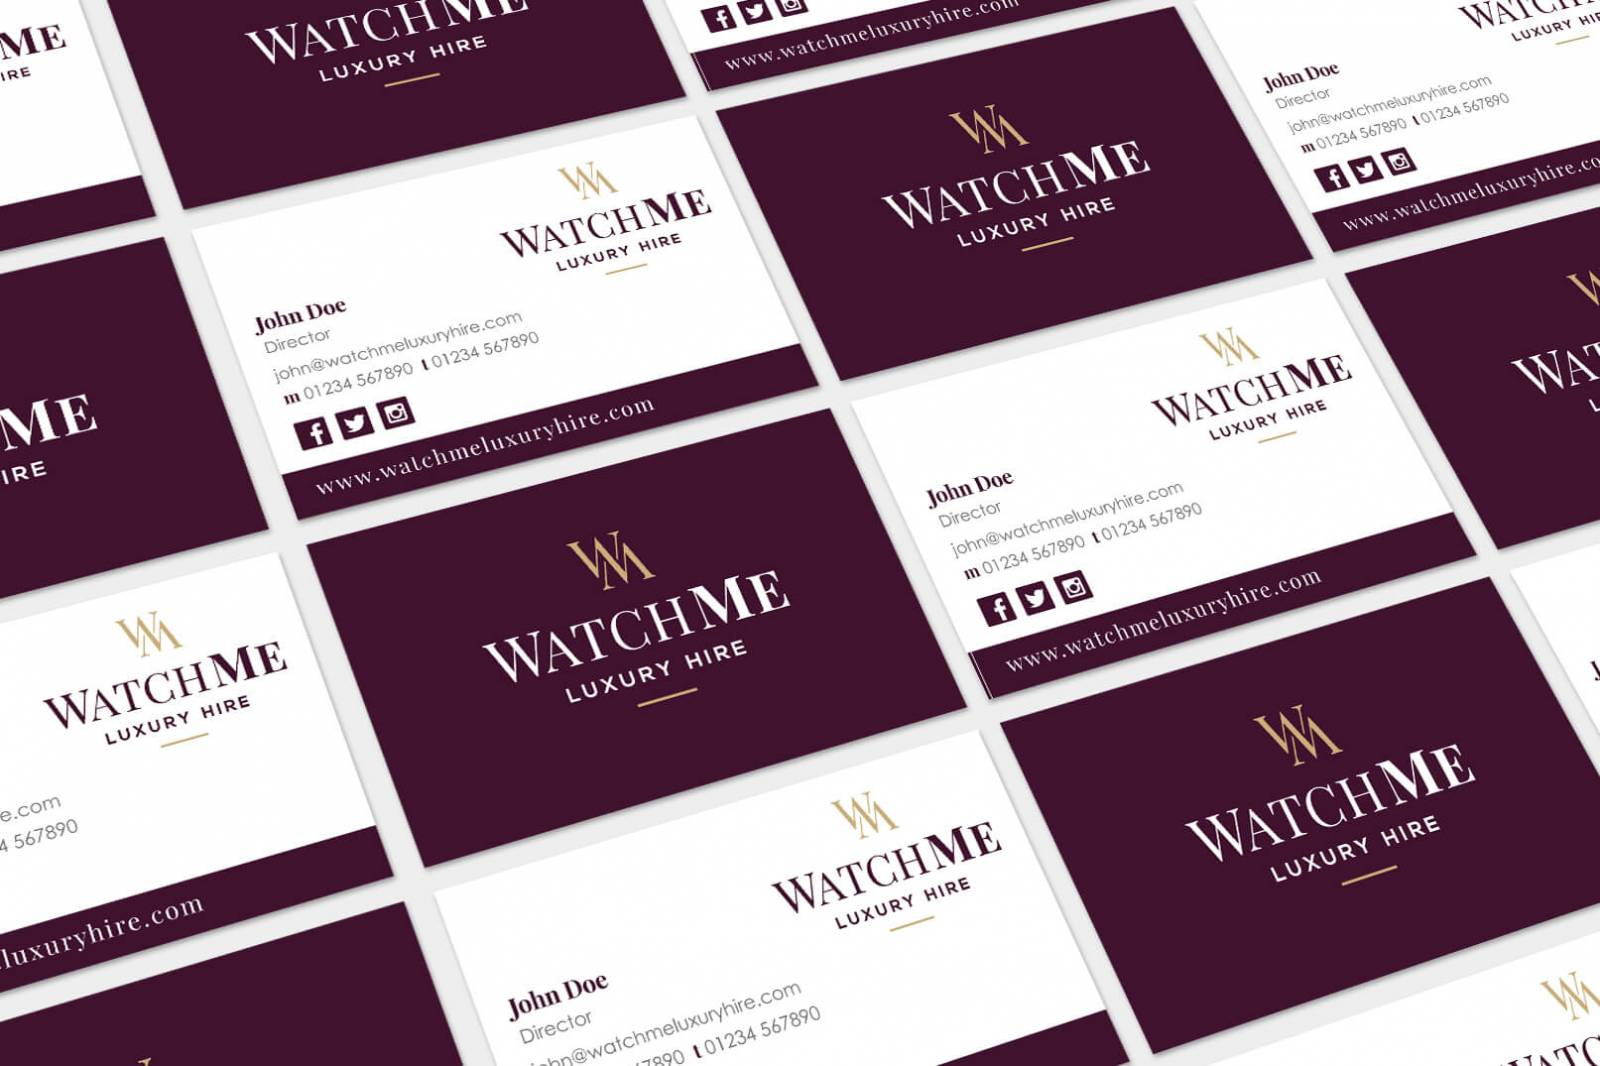 Business-Watchme-business-card-design-agency-graphic-design-canterbury.jpg